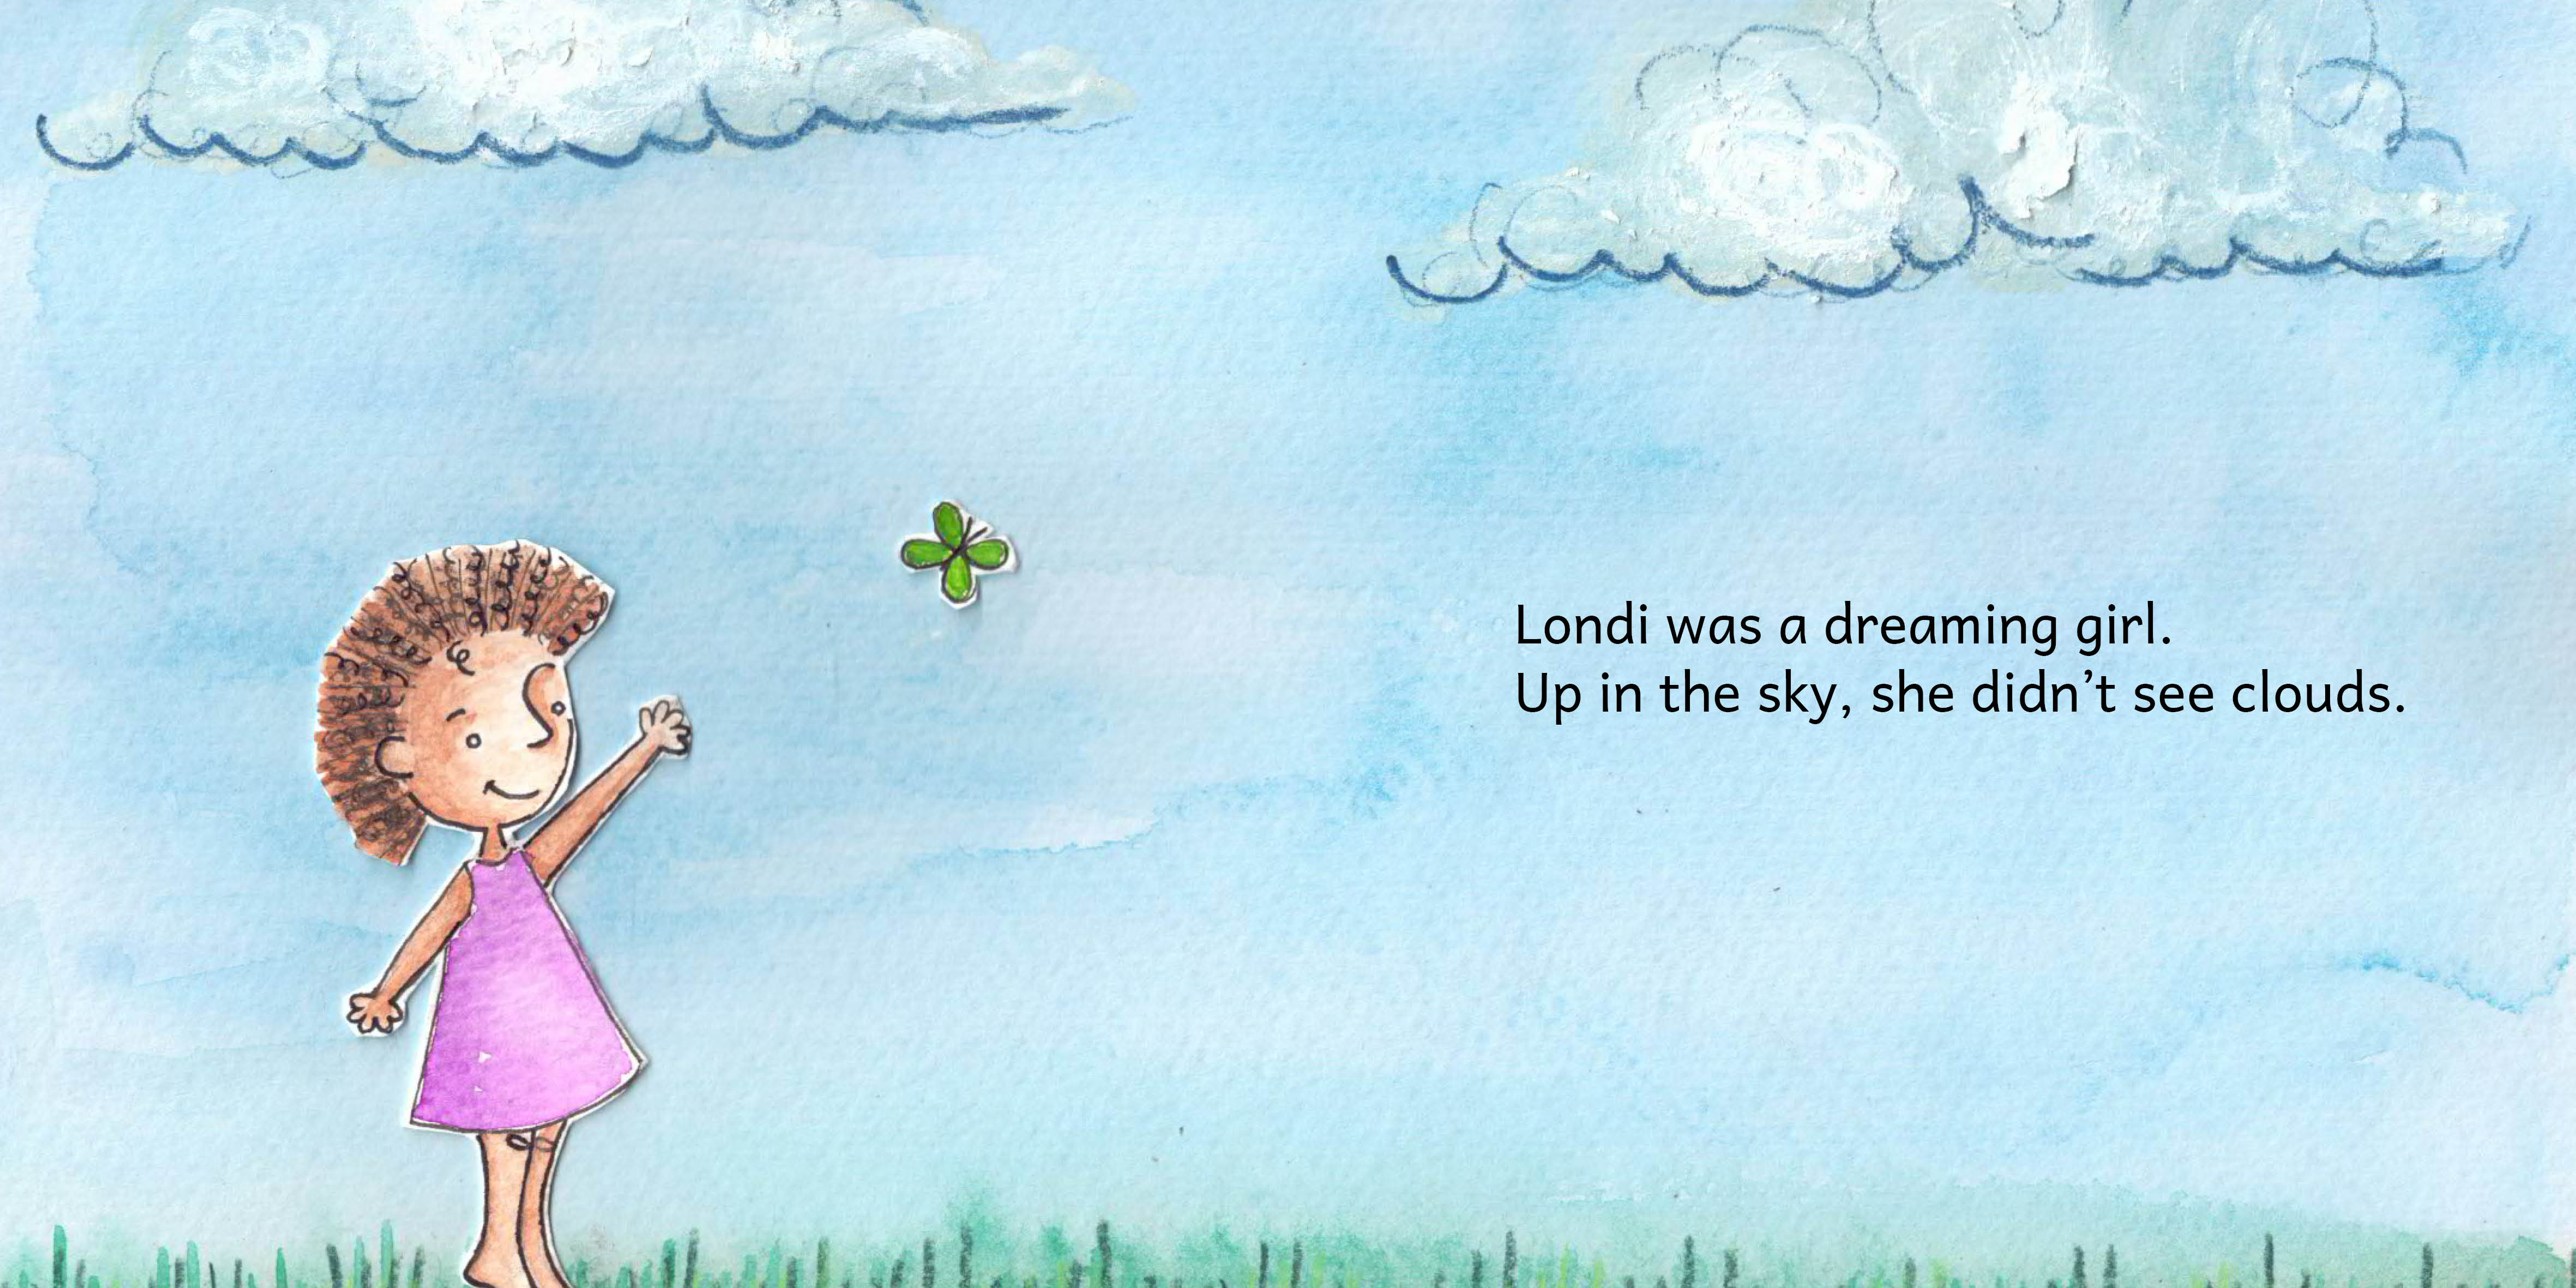 londi the dreaming girl by lauren holliday and nathalie koenig